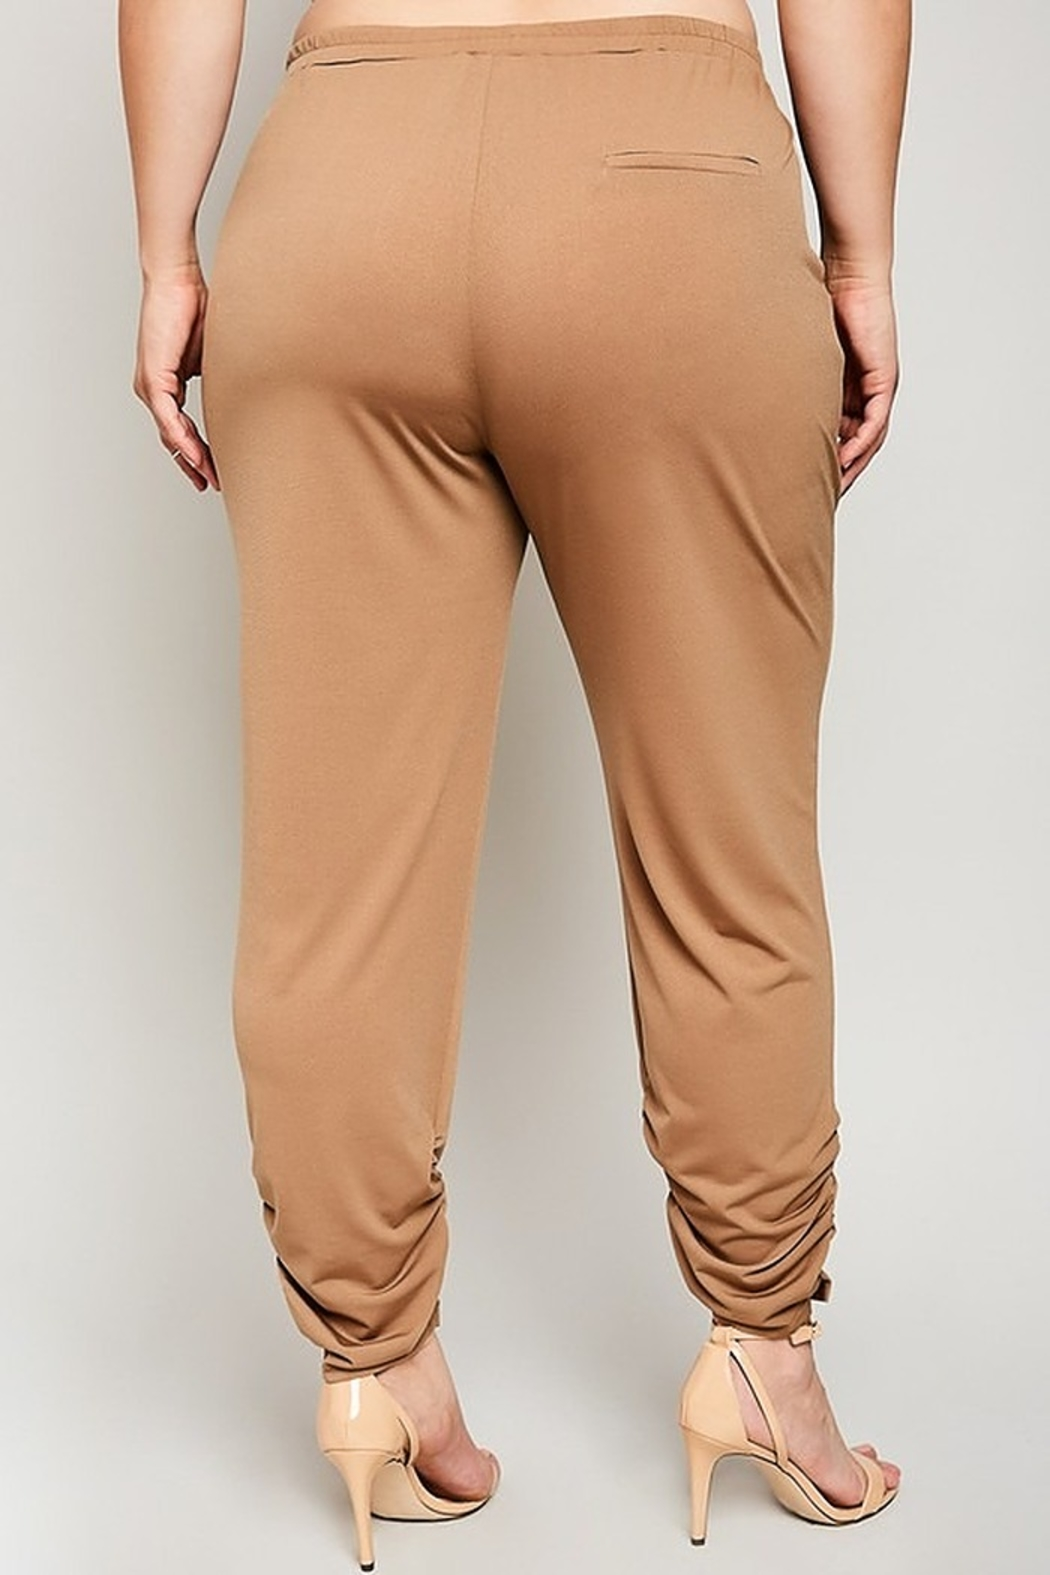 HAYDEN LOS ANGLES Divas Kate Pants - Front Full Image